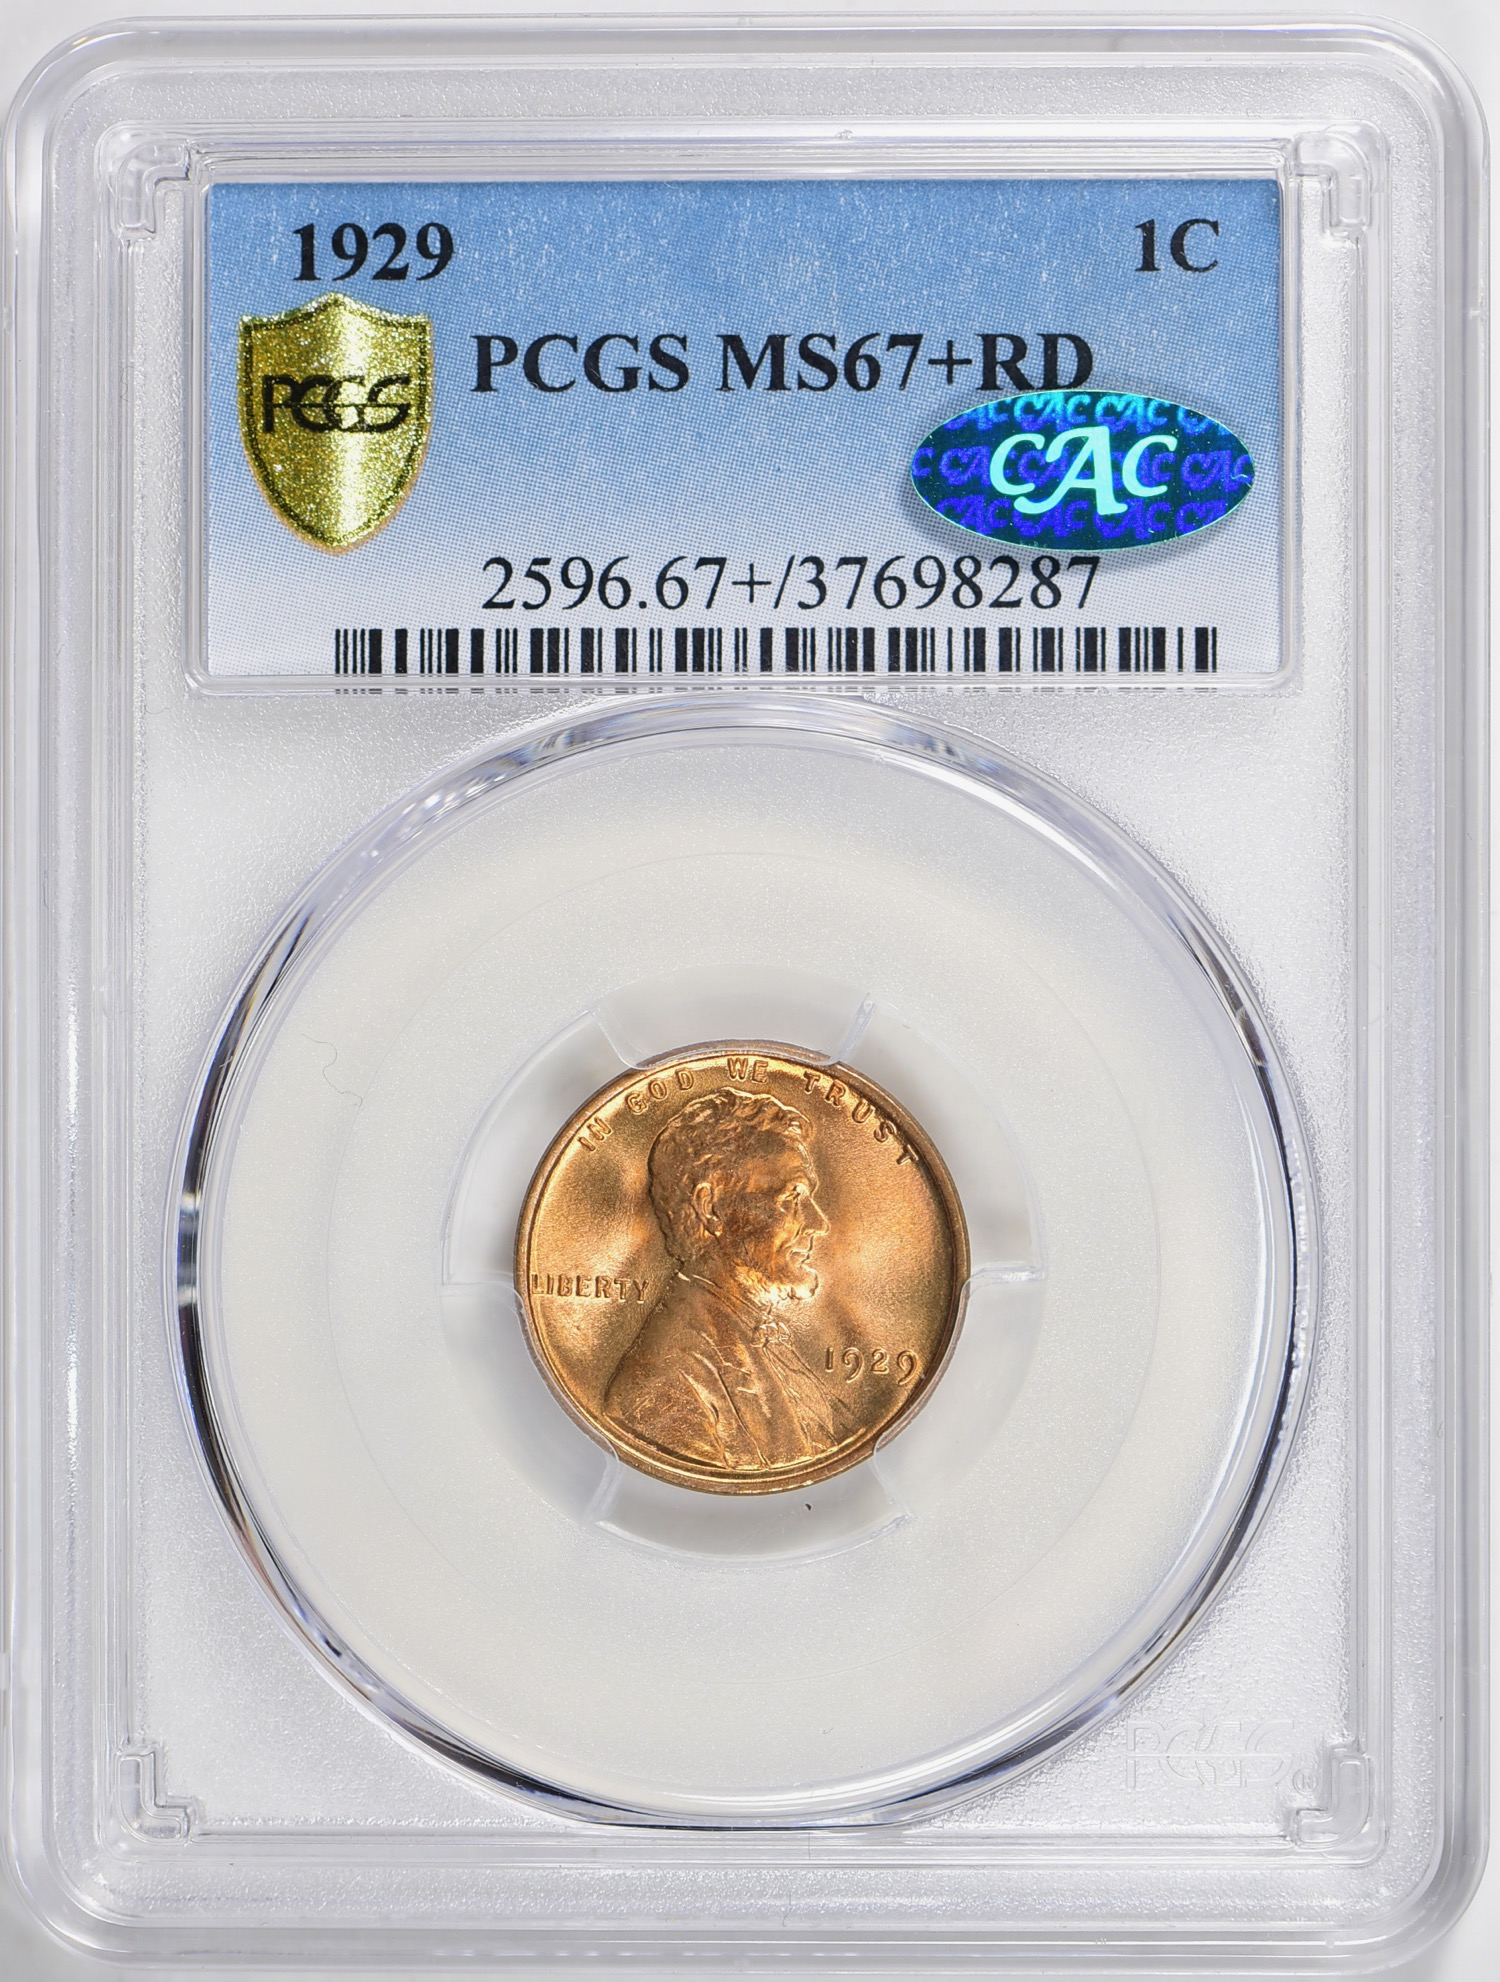 1929 MS67+RD CAC - GreatCollections 7.28.19. CC bid $3,361 and hammer was $4,001. CC dearly wanted the coin. PCGS price guide was $3,850. Winning bid with auction fees was $4,612.50. A 12/- none finer coin.